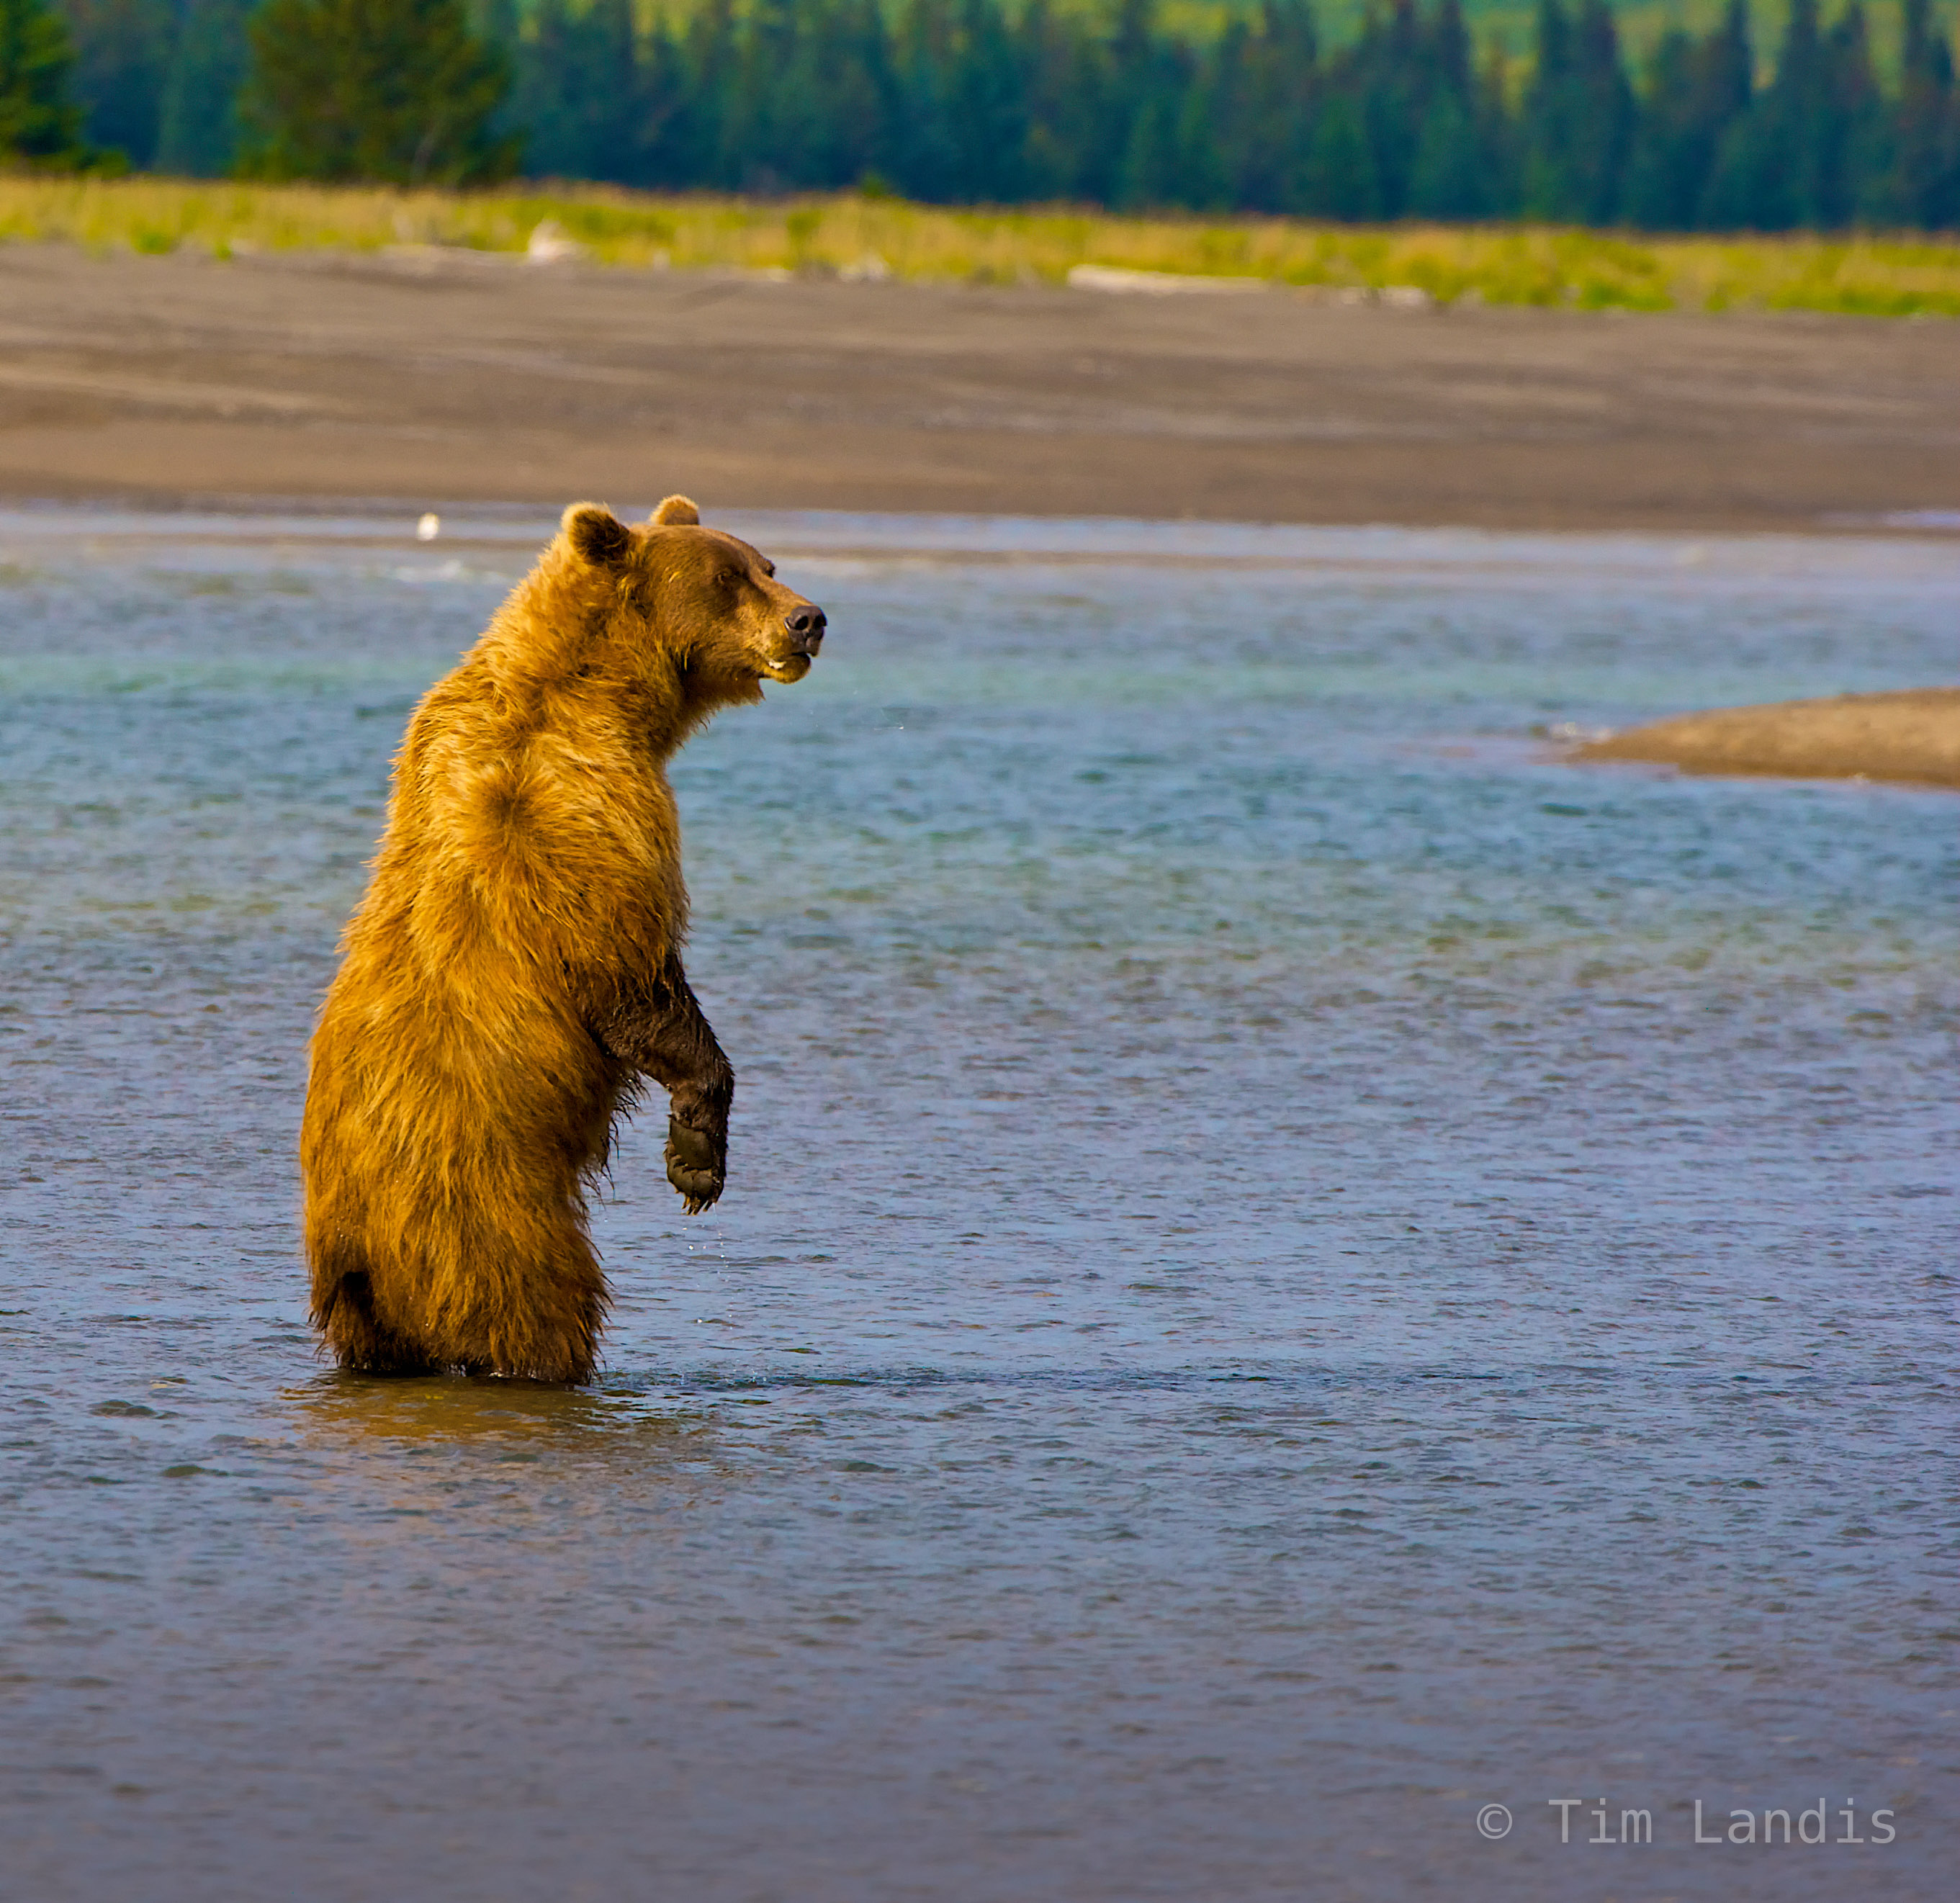 grizzly bear fishing, photo